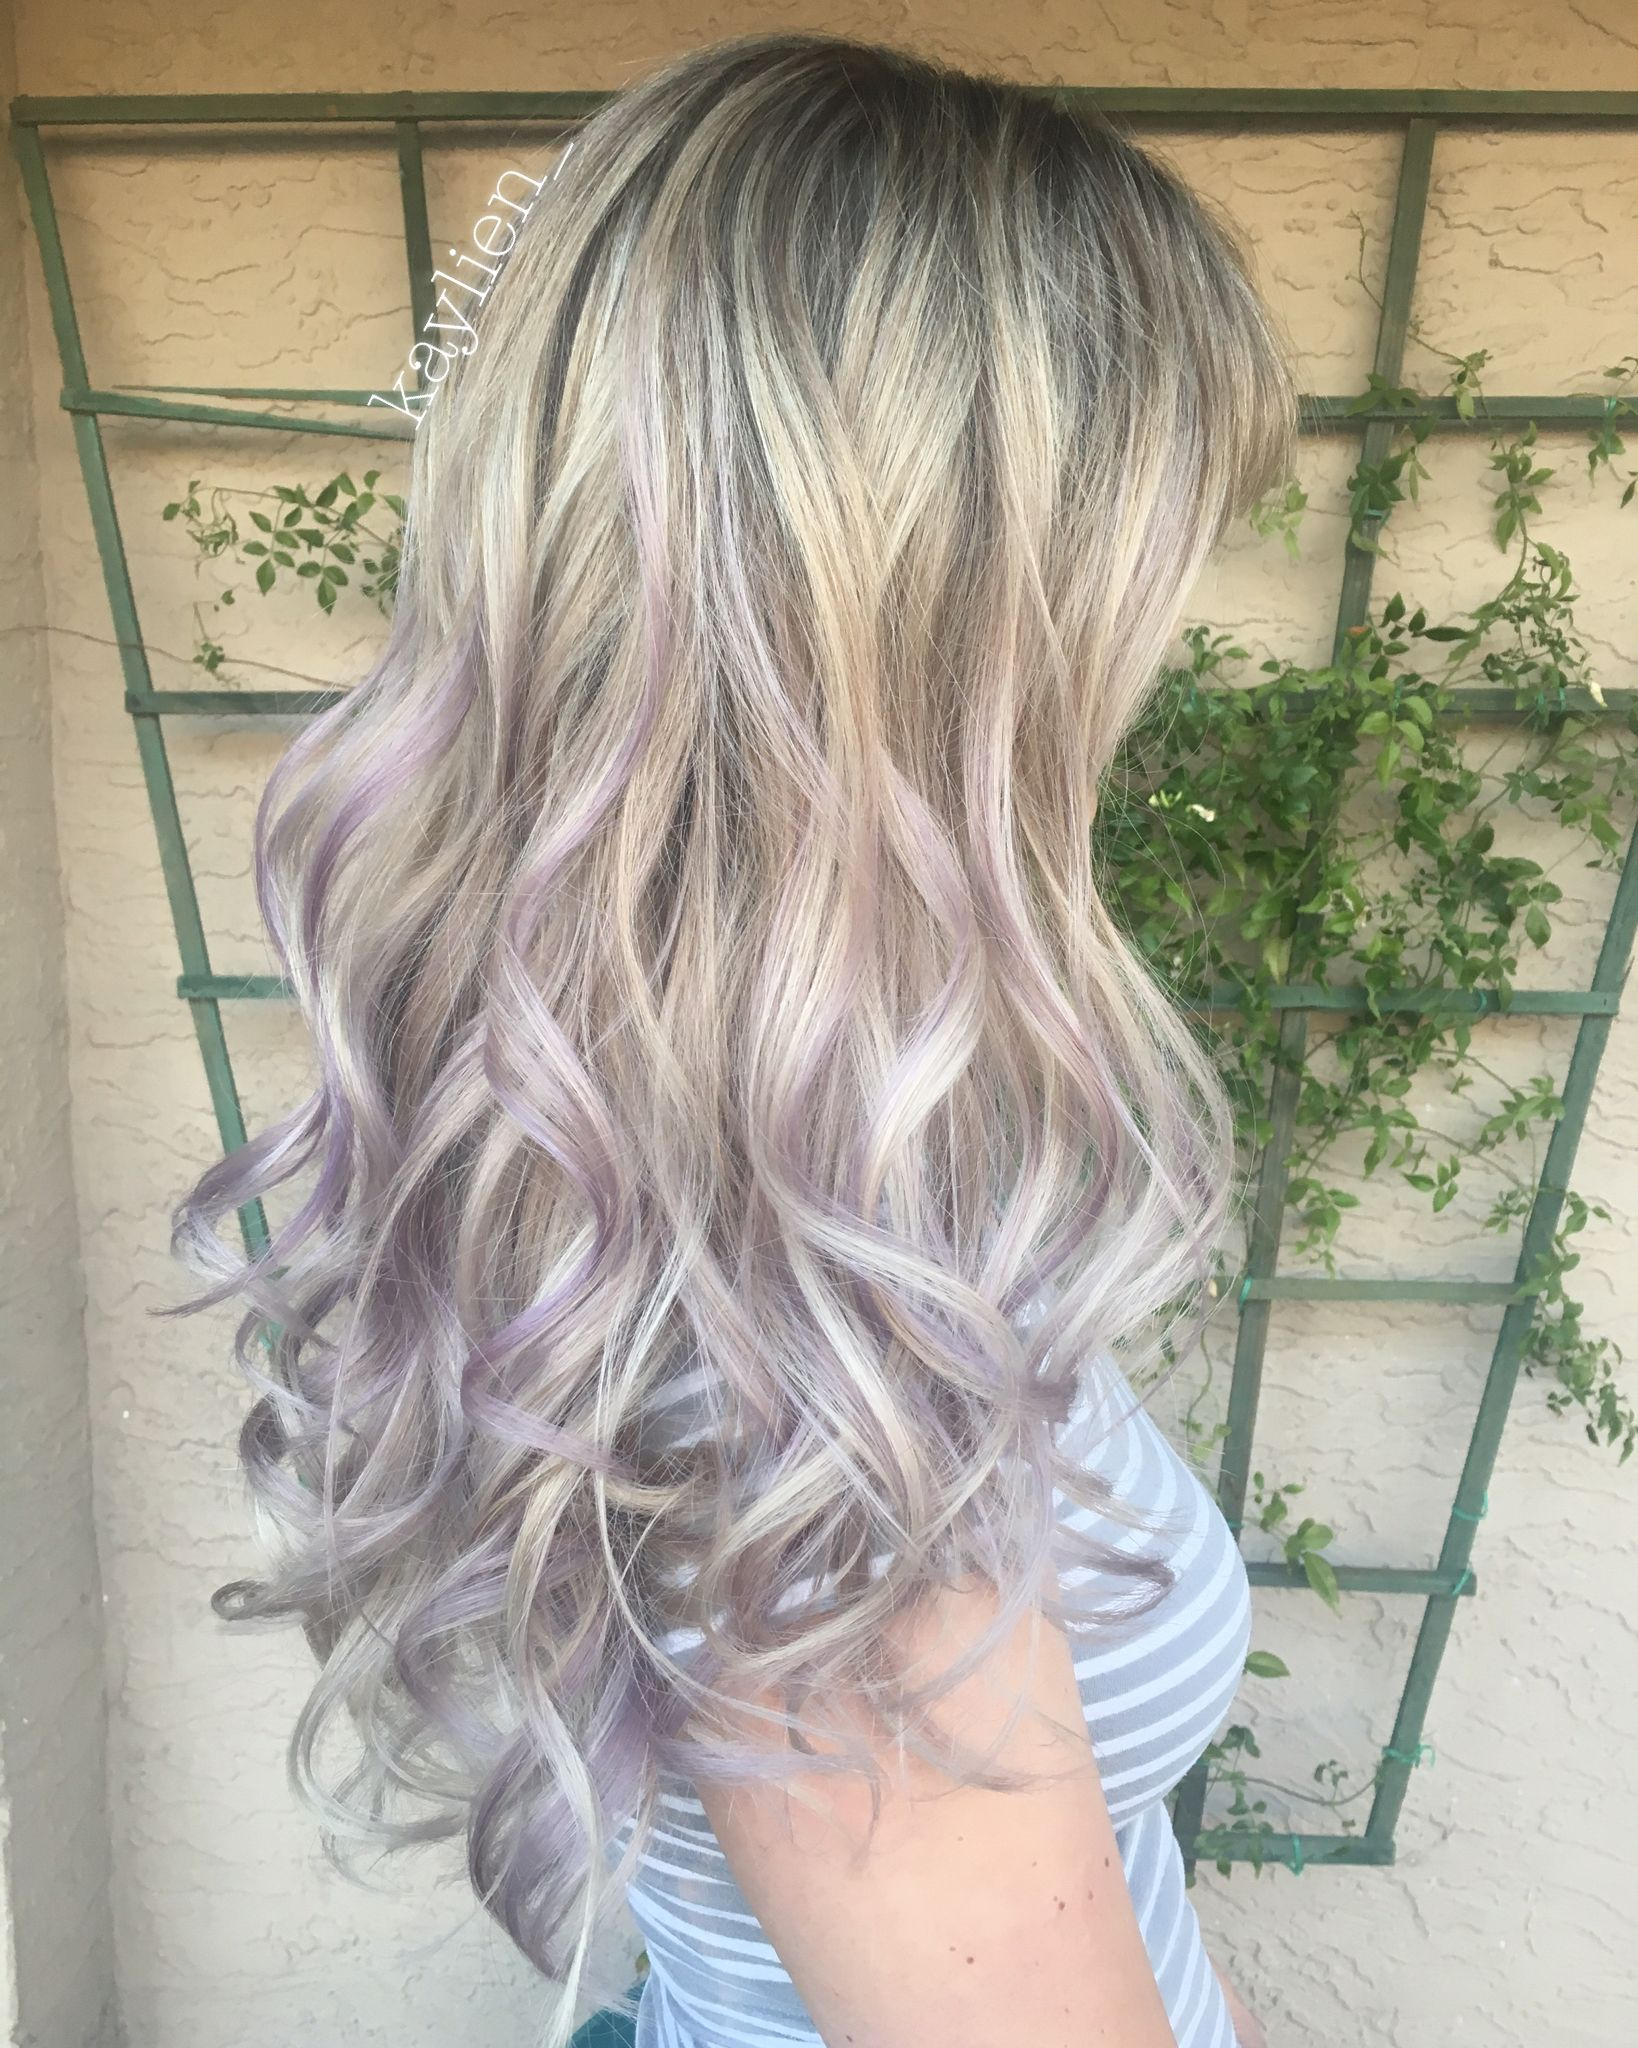 Icy Highlight With Smokey Lavender Ends Hair Color Pastel Icy Blonde Hair Long Hair Styles